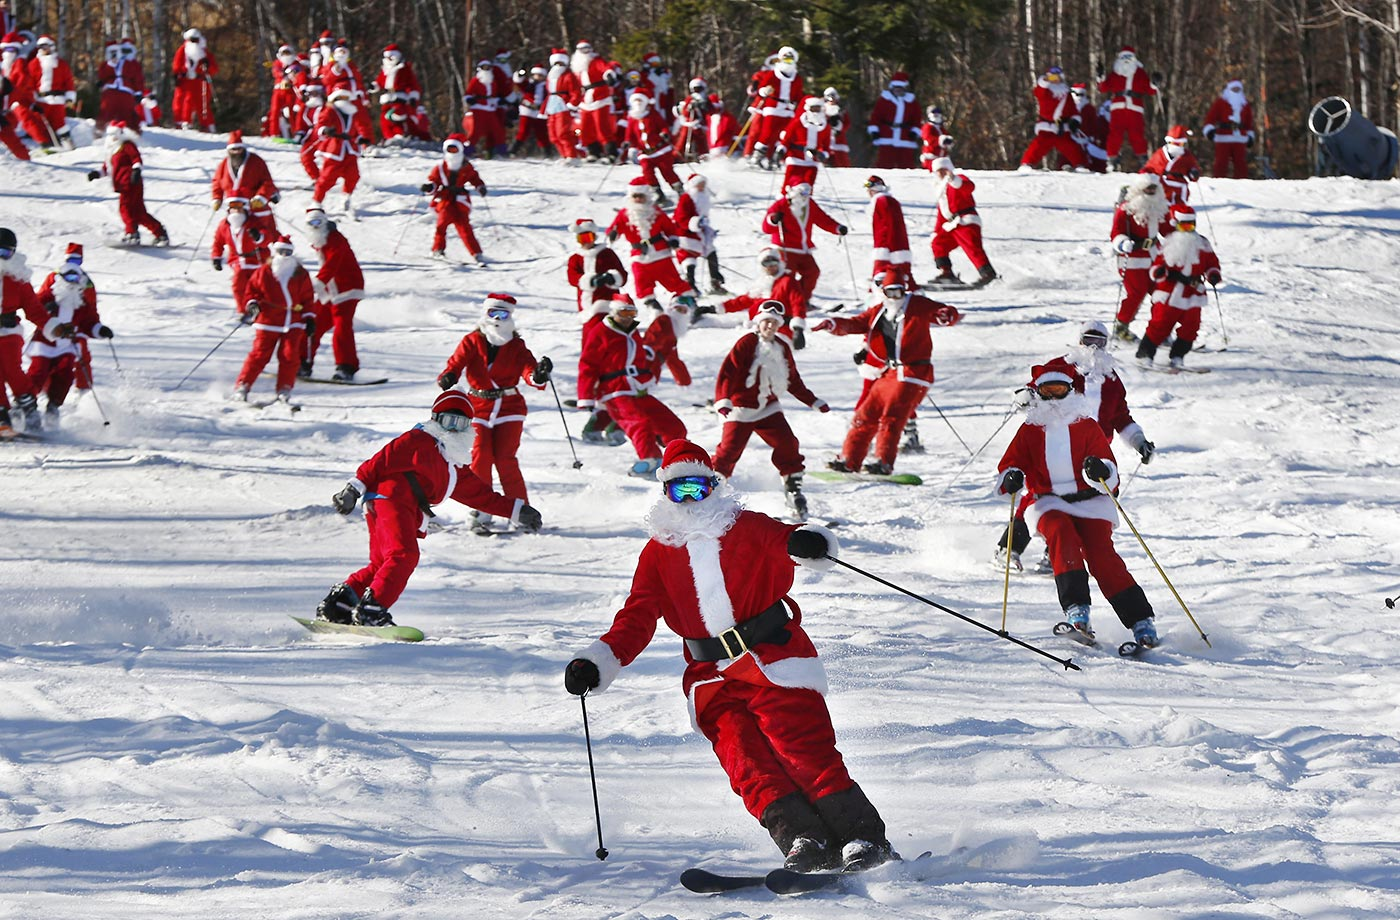 Santass take to the slopes at the Sunday River ski resort in Maine.